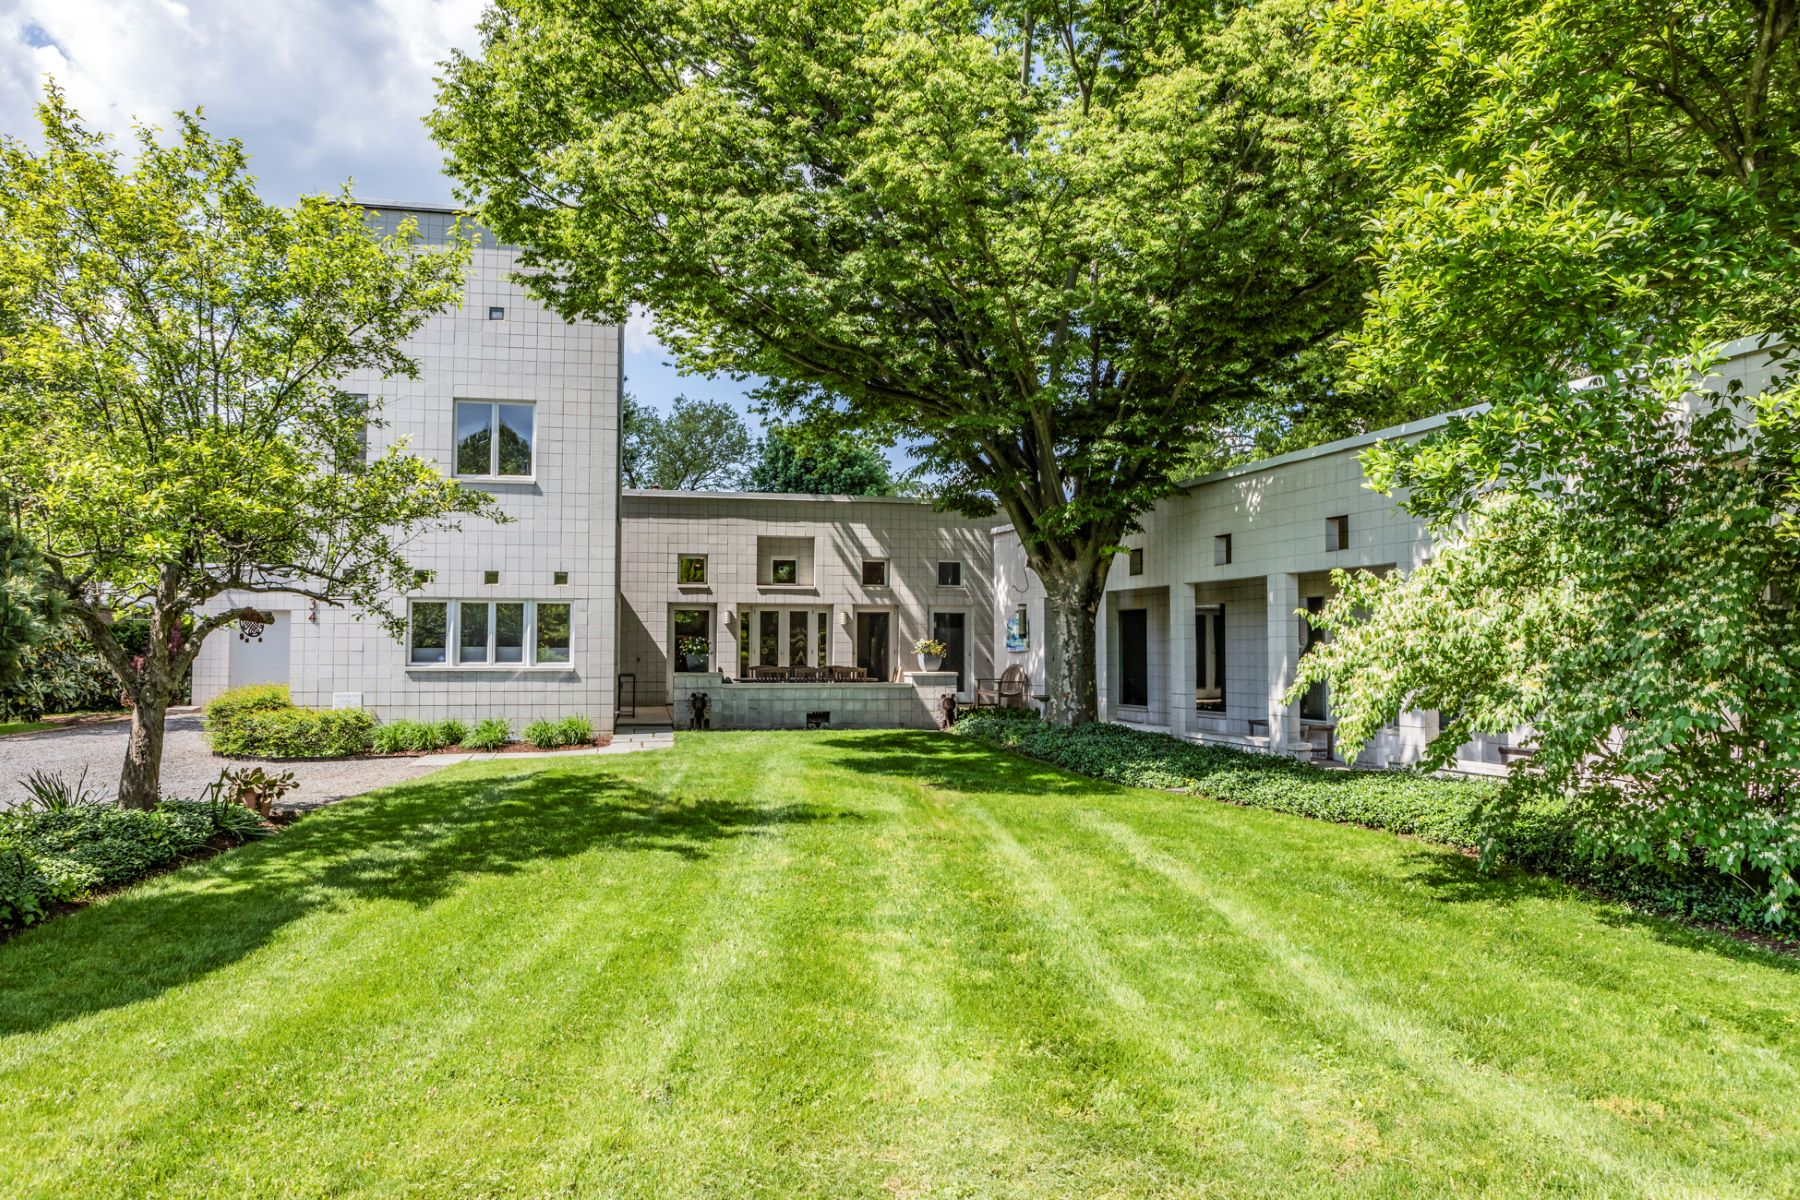 Single Family Home for Sale at Award-Winning Masterpiece by Olcott + Schliemann 34 Oakland Street, Princeton, New Jersey 08540 United States